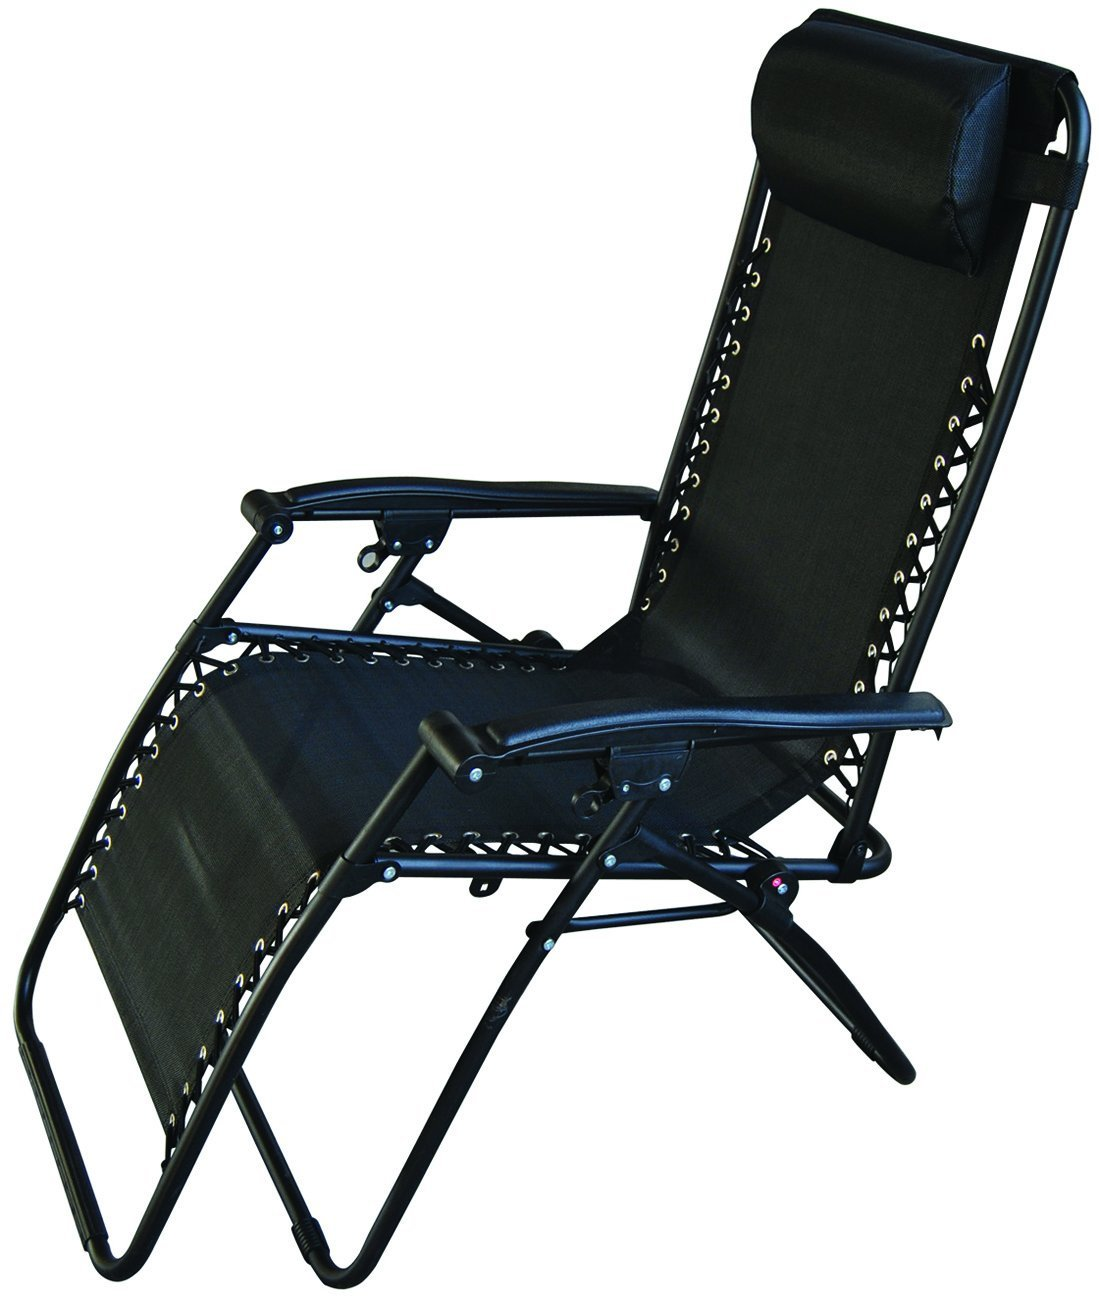 Redwood Leisure Textilene Reclining Chair - Black